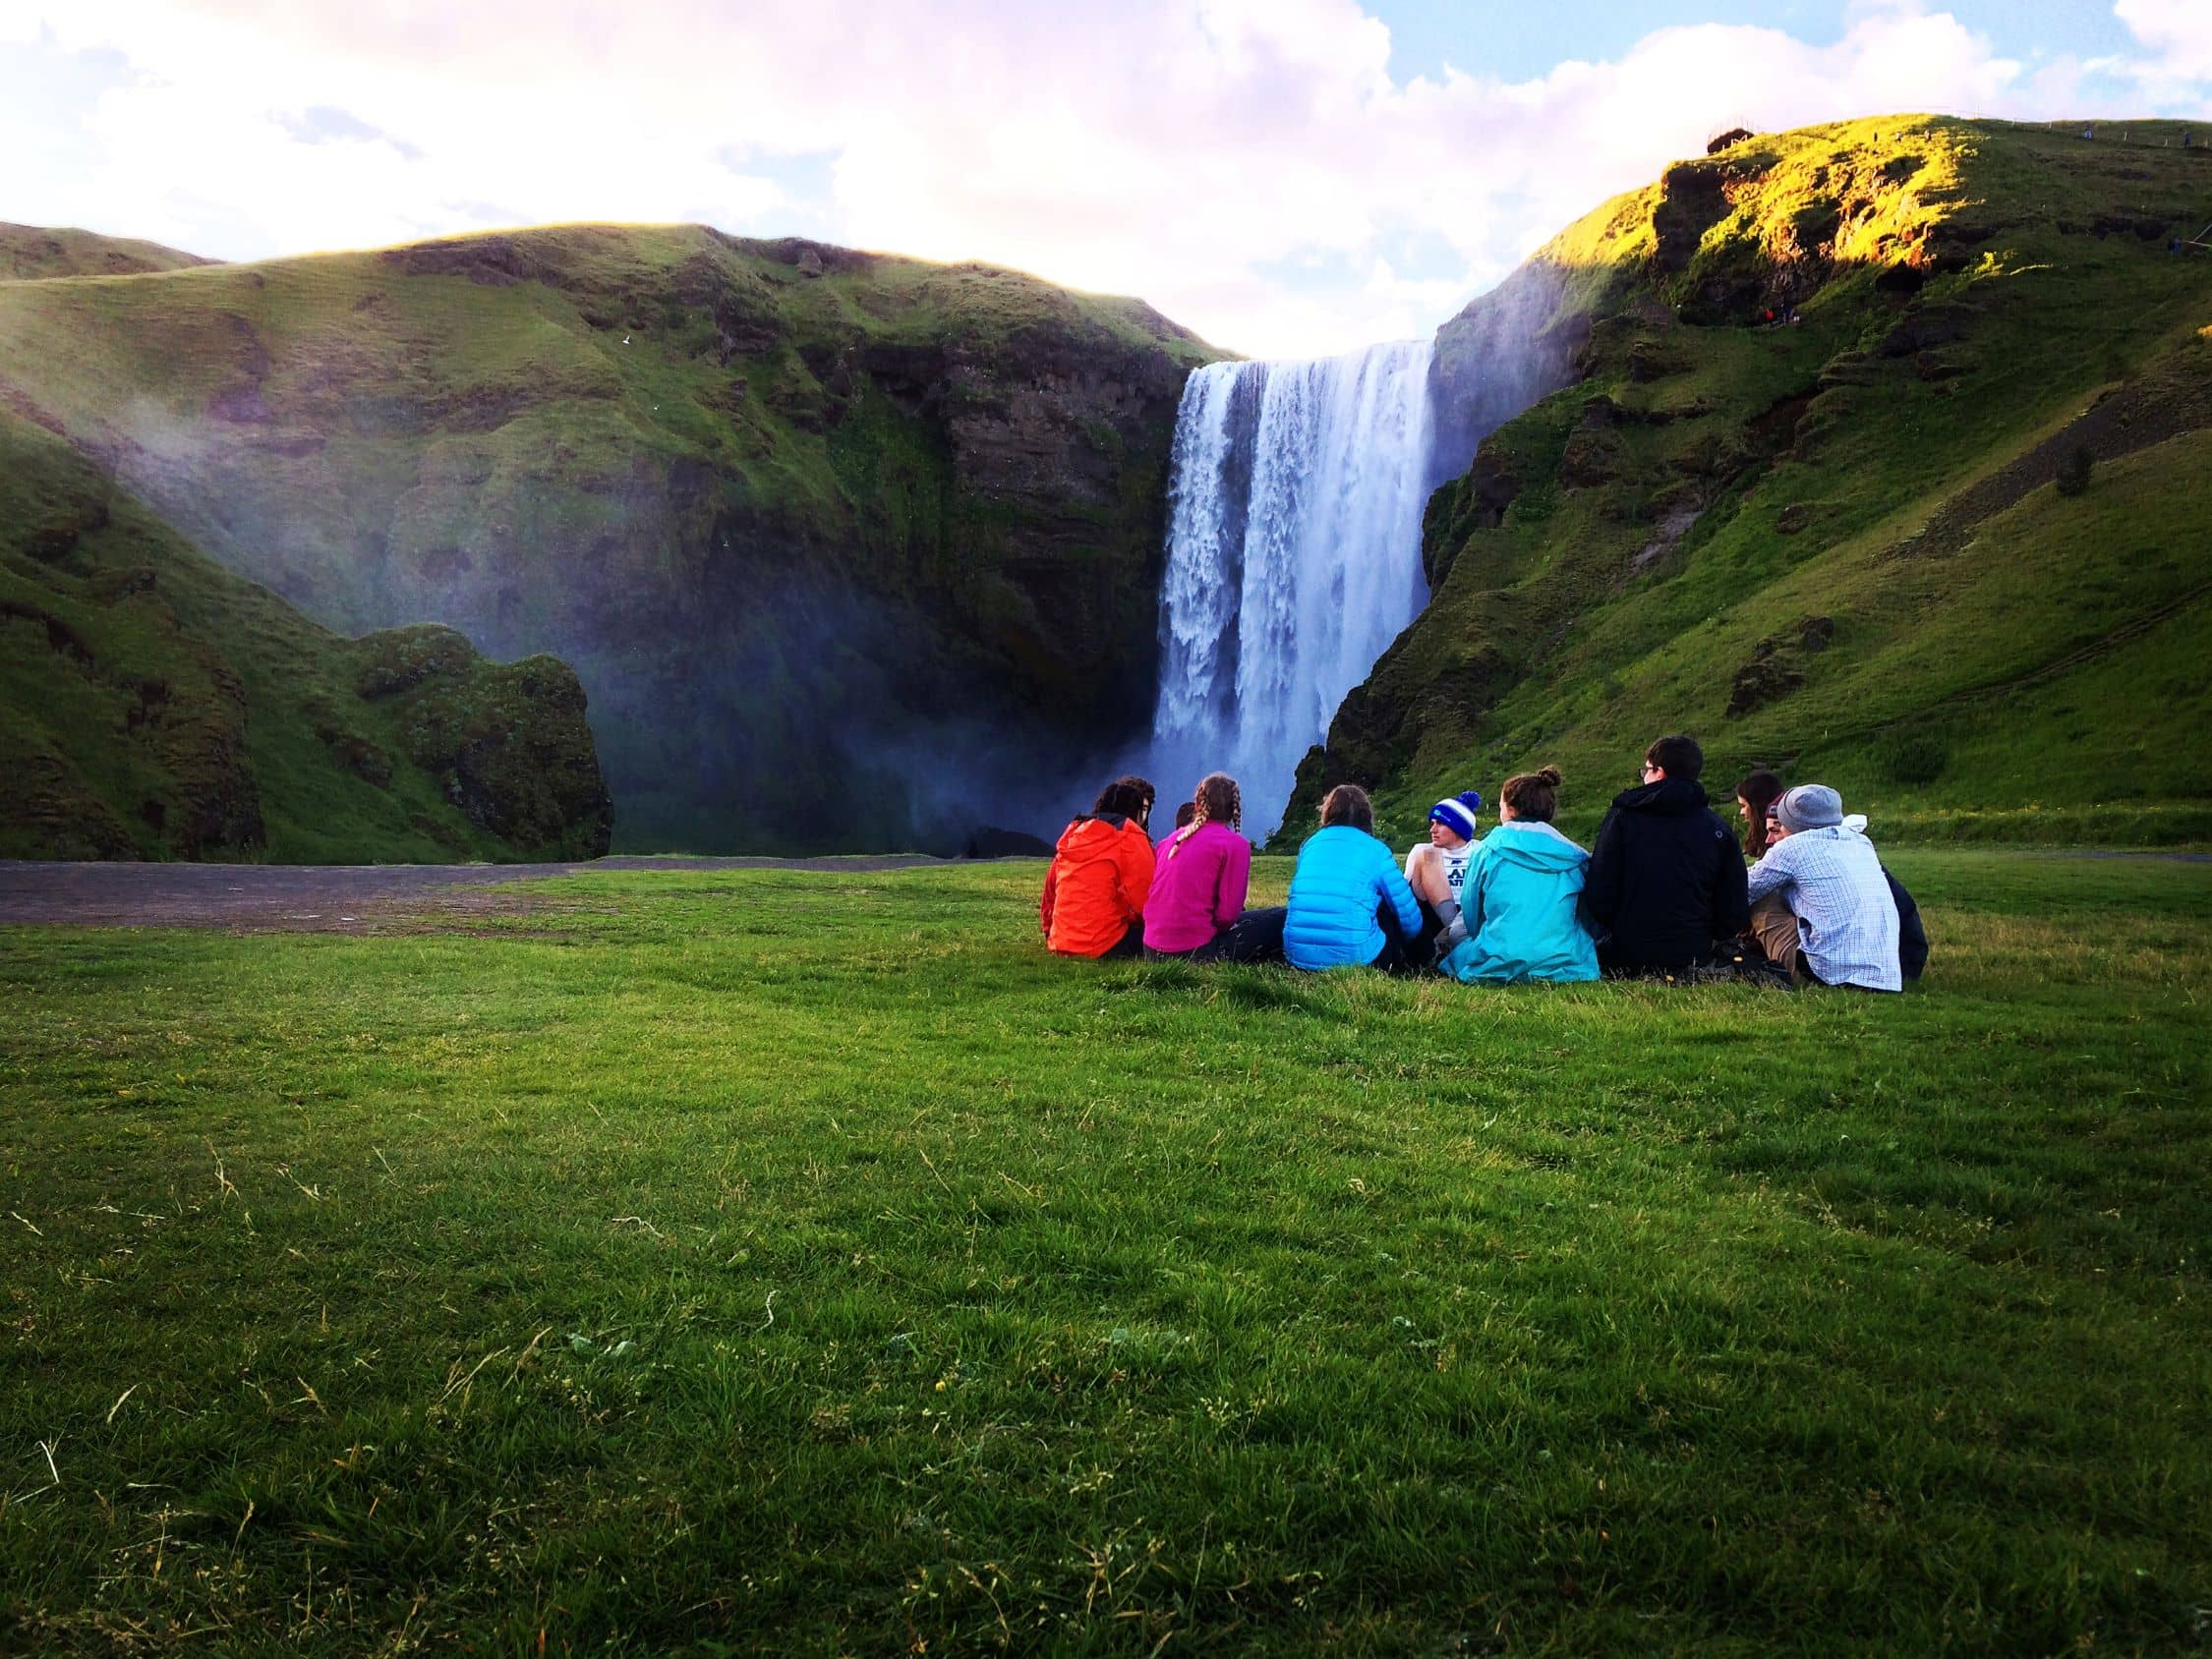 Teen Summer Hiking Trip Iceland Expedition 10